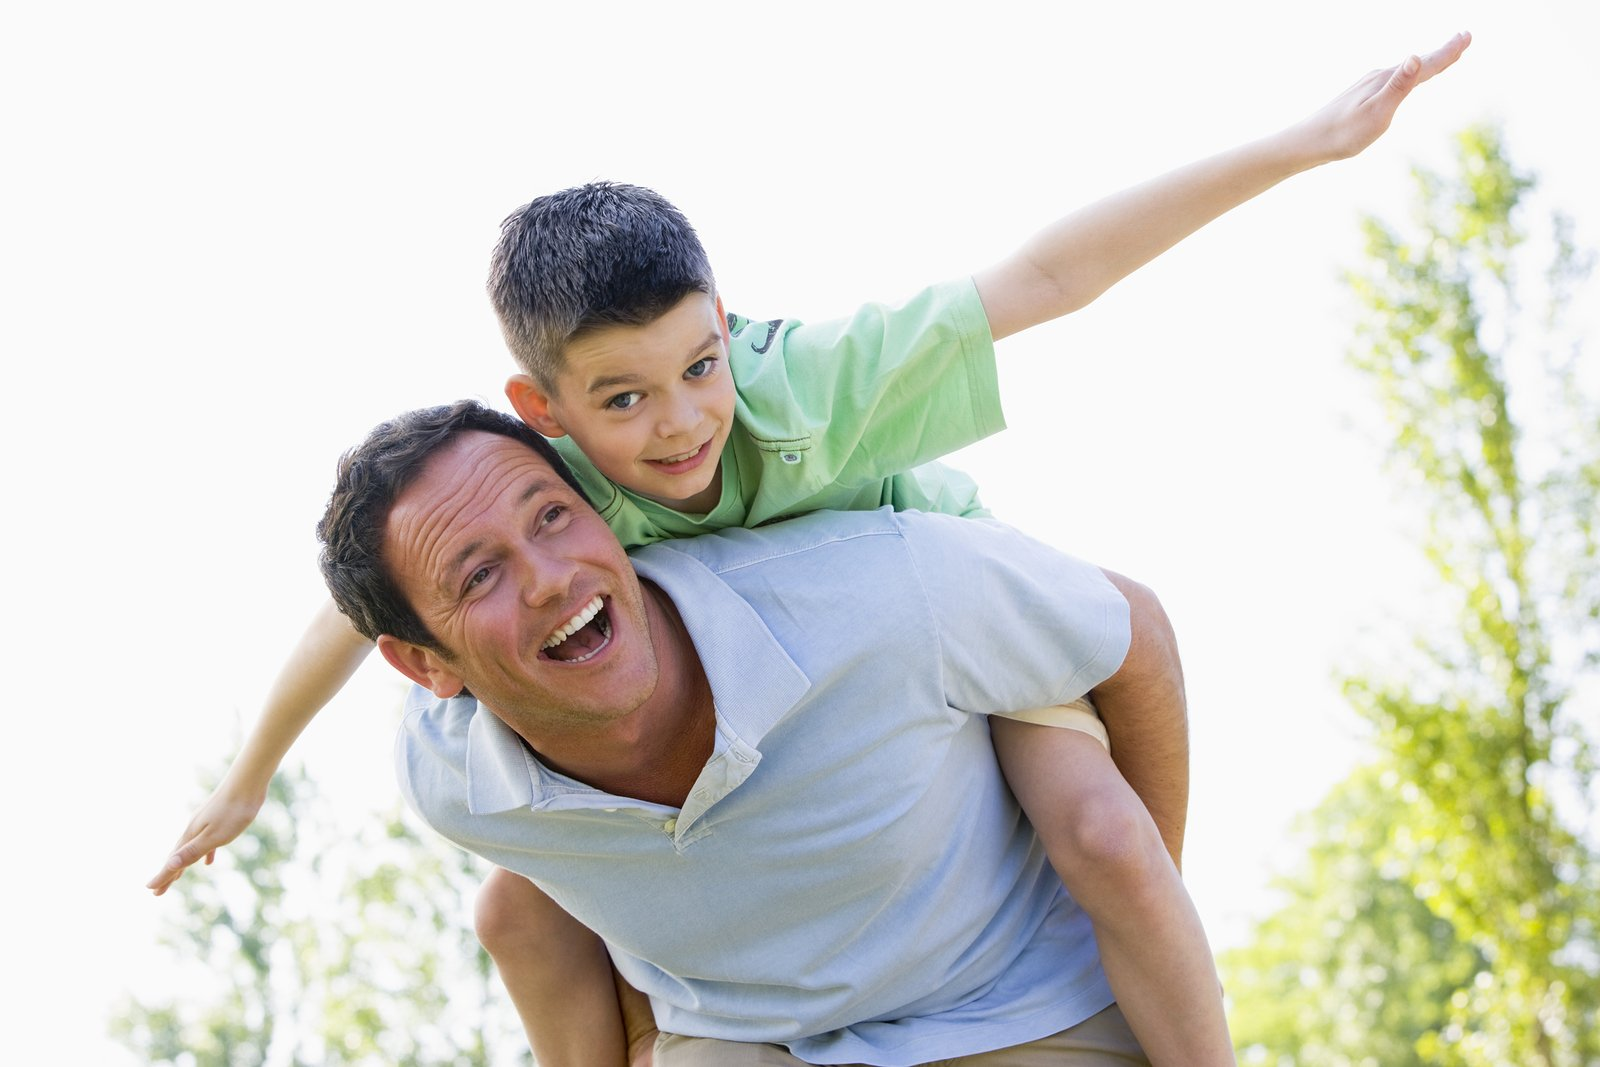 Parenting skills: Managing Challenging Behaviors